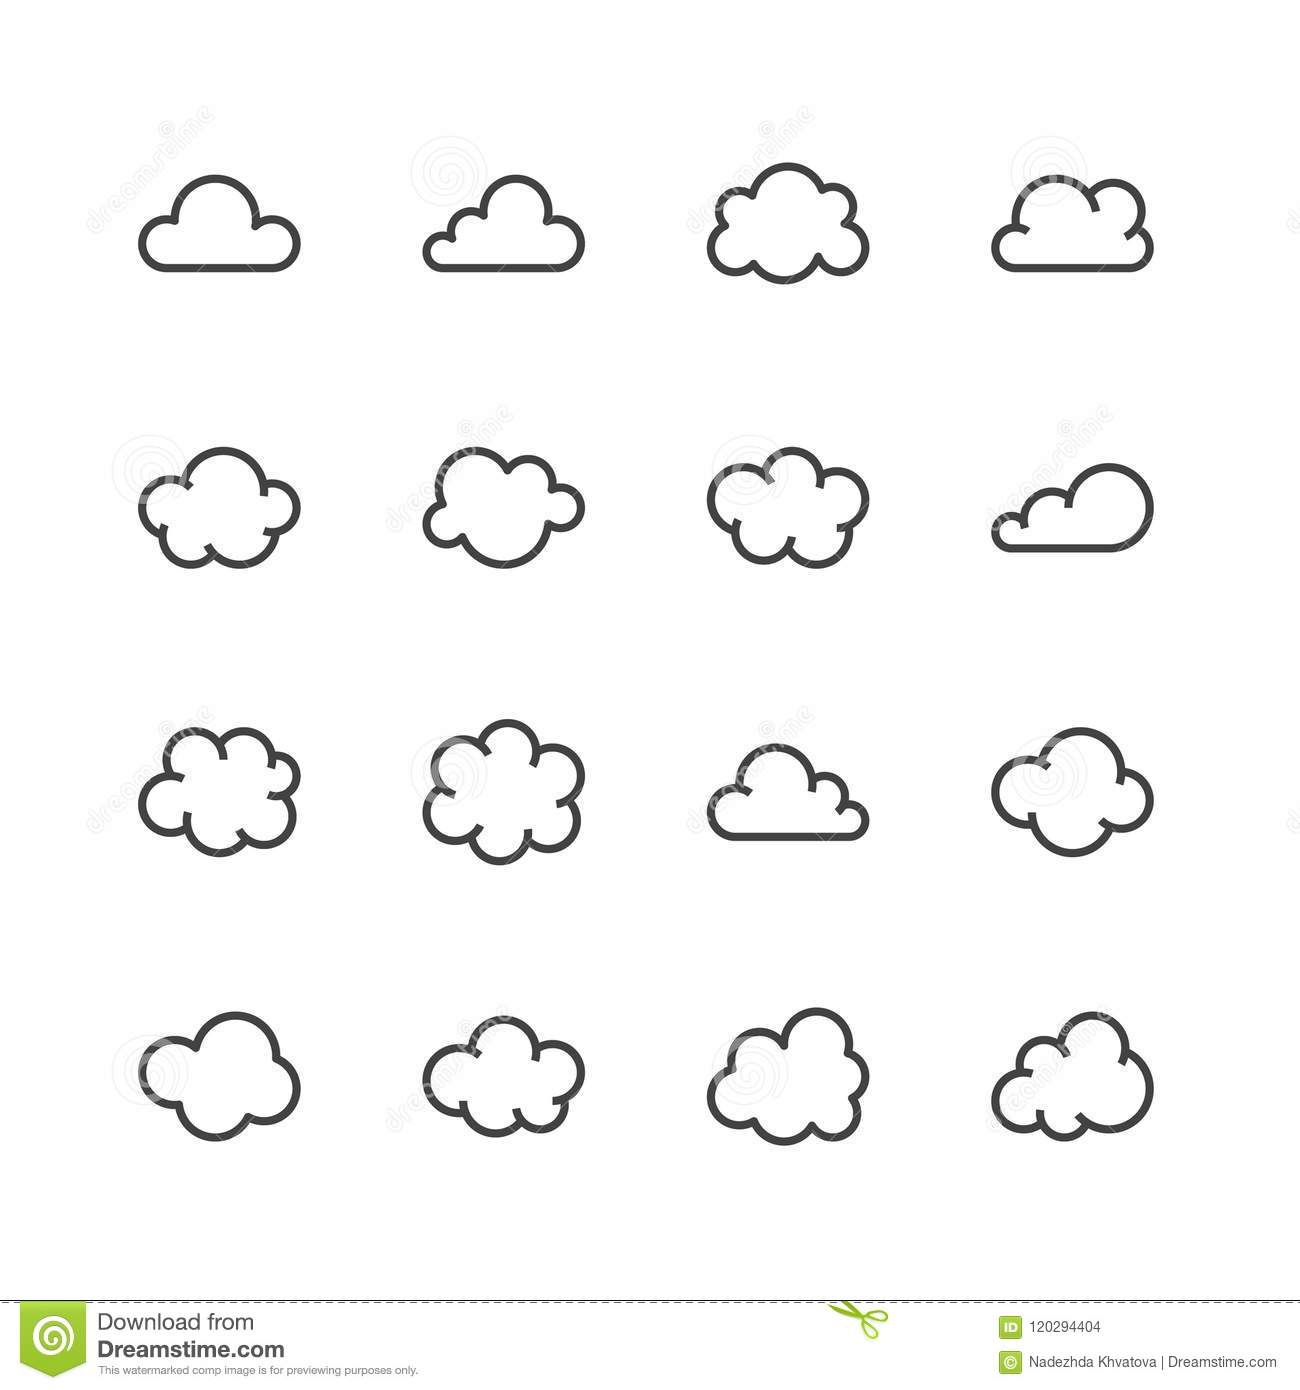 Cloud Flat Line Icons  Clouds Symbols For Data Storage